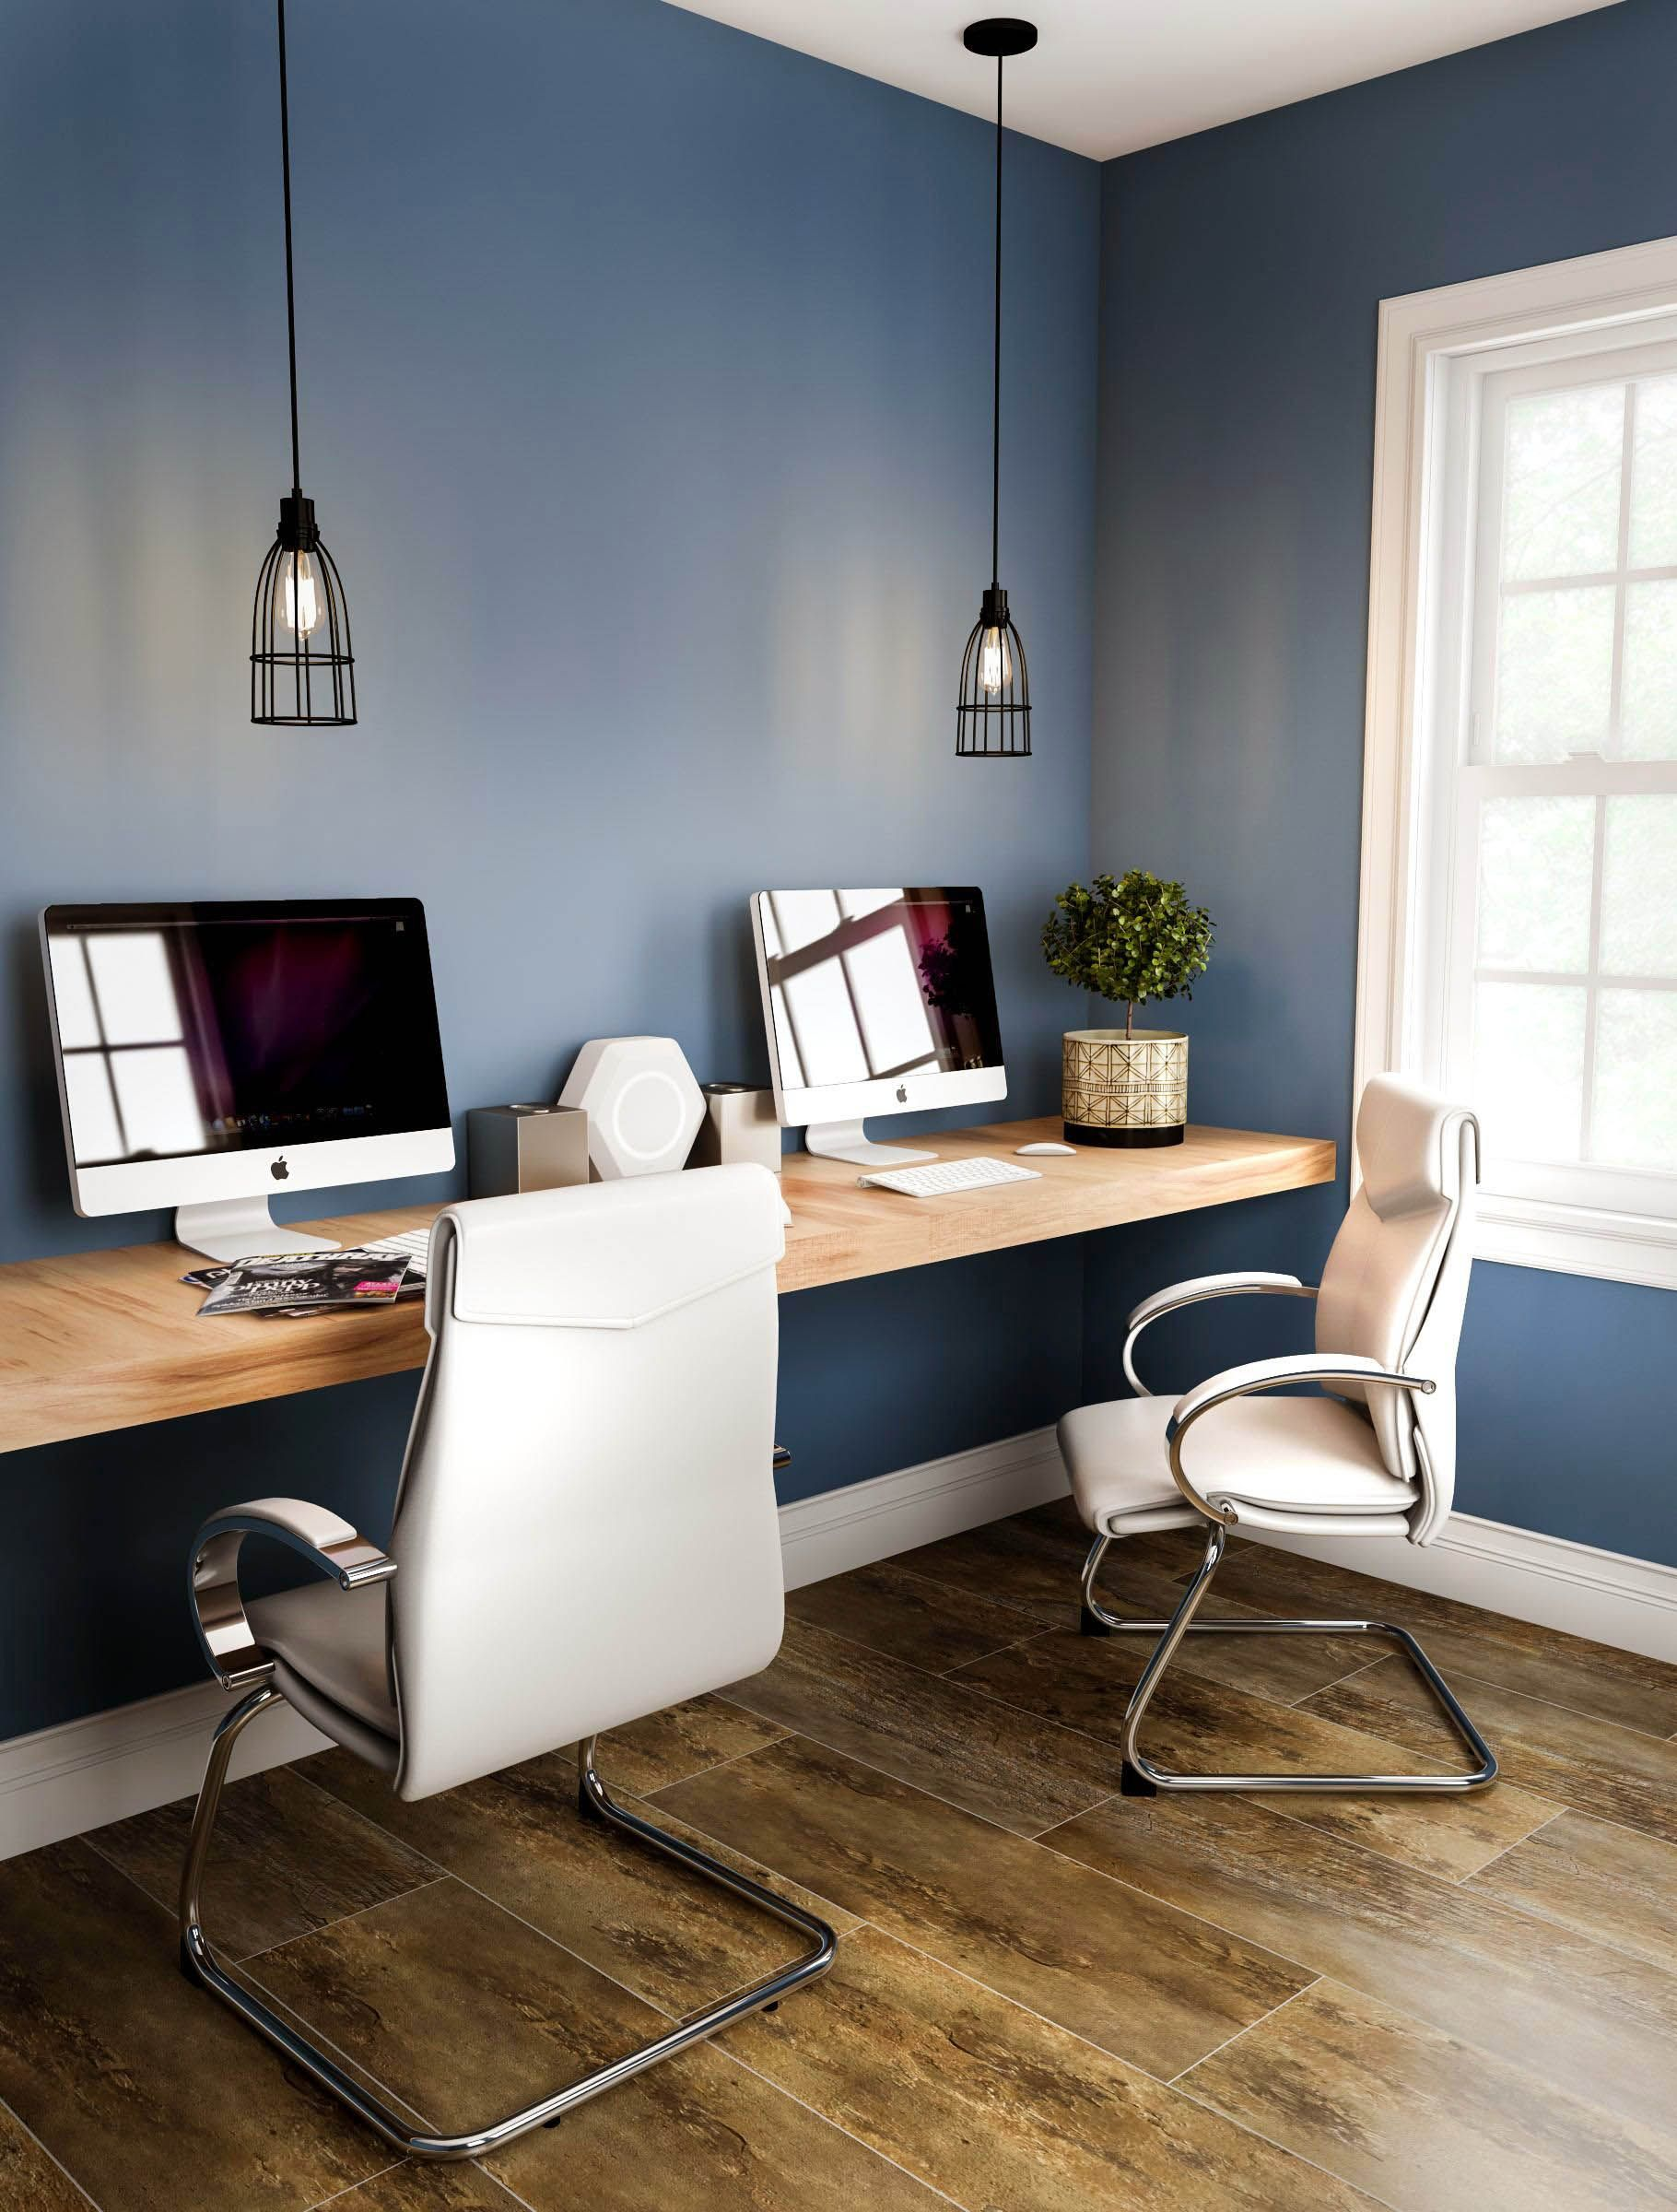 Stylish Floating Desk Ikea Exclusive On Homesable Home Decor Home Office Design Floating Desk Home Office Space